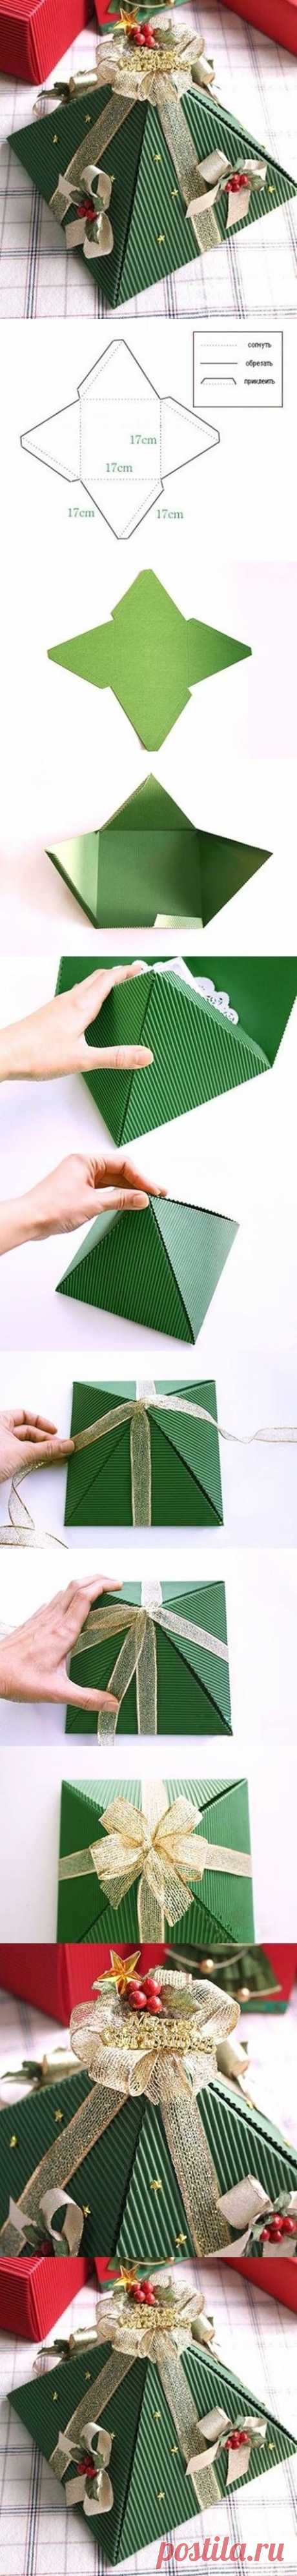 DIY lovers, you are lucky to find out today's post. Since Christmas is coming, amounts of gift boxes or bags are needed to carry the presents. How to make a gift box or a gift bag easily? The post will show you some useful tutorials. As a DIY lover, you won't miss everything today. First …